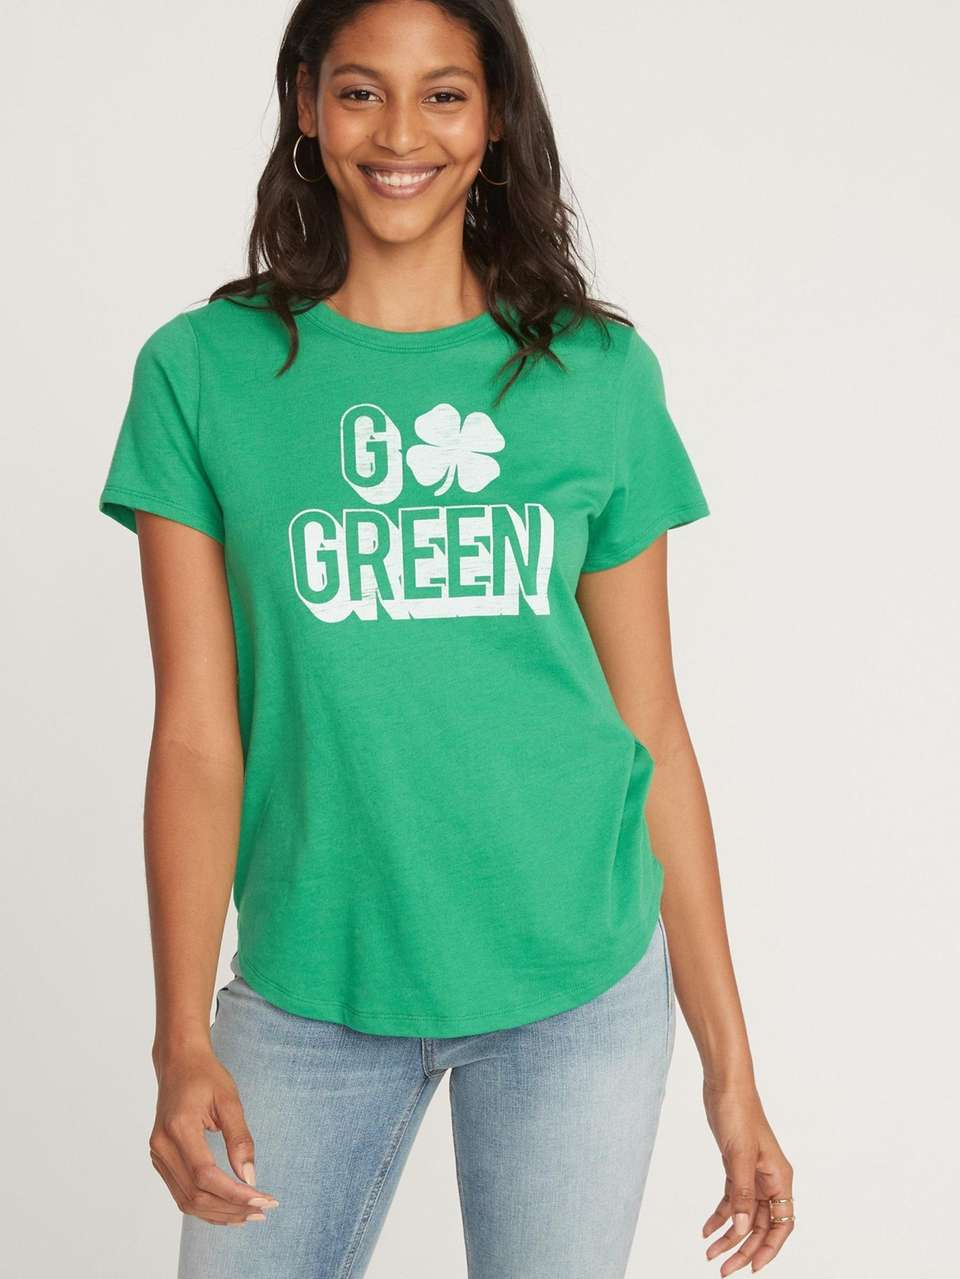 Complete your St. Patrick's Day look with a